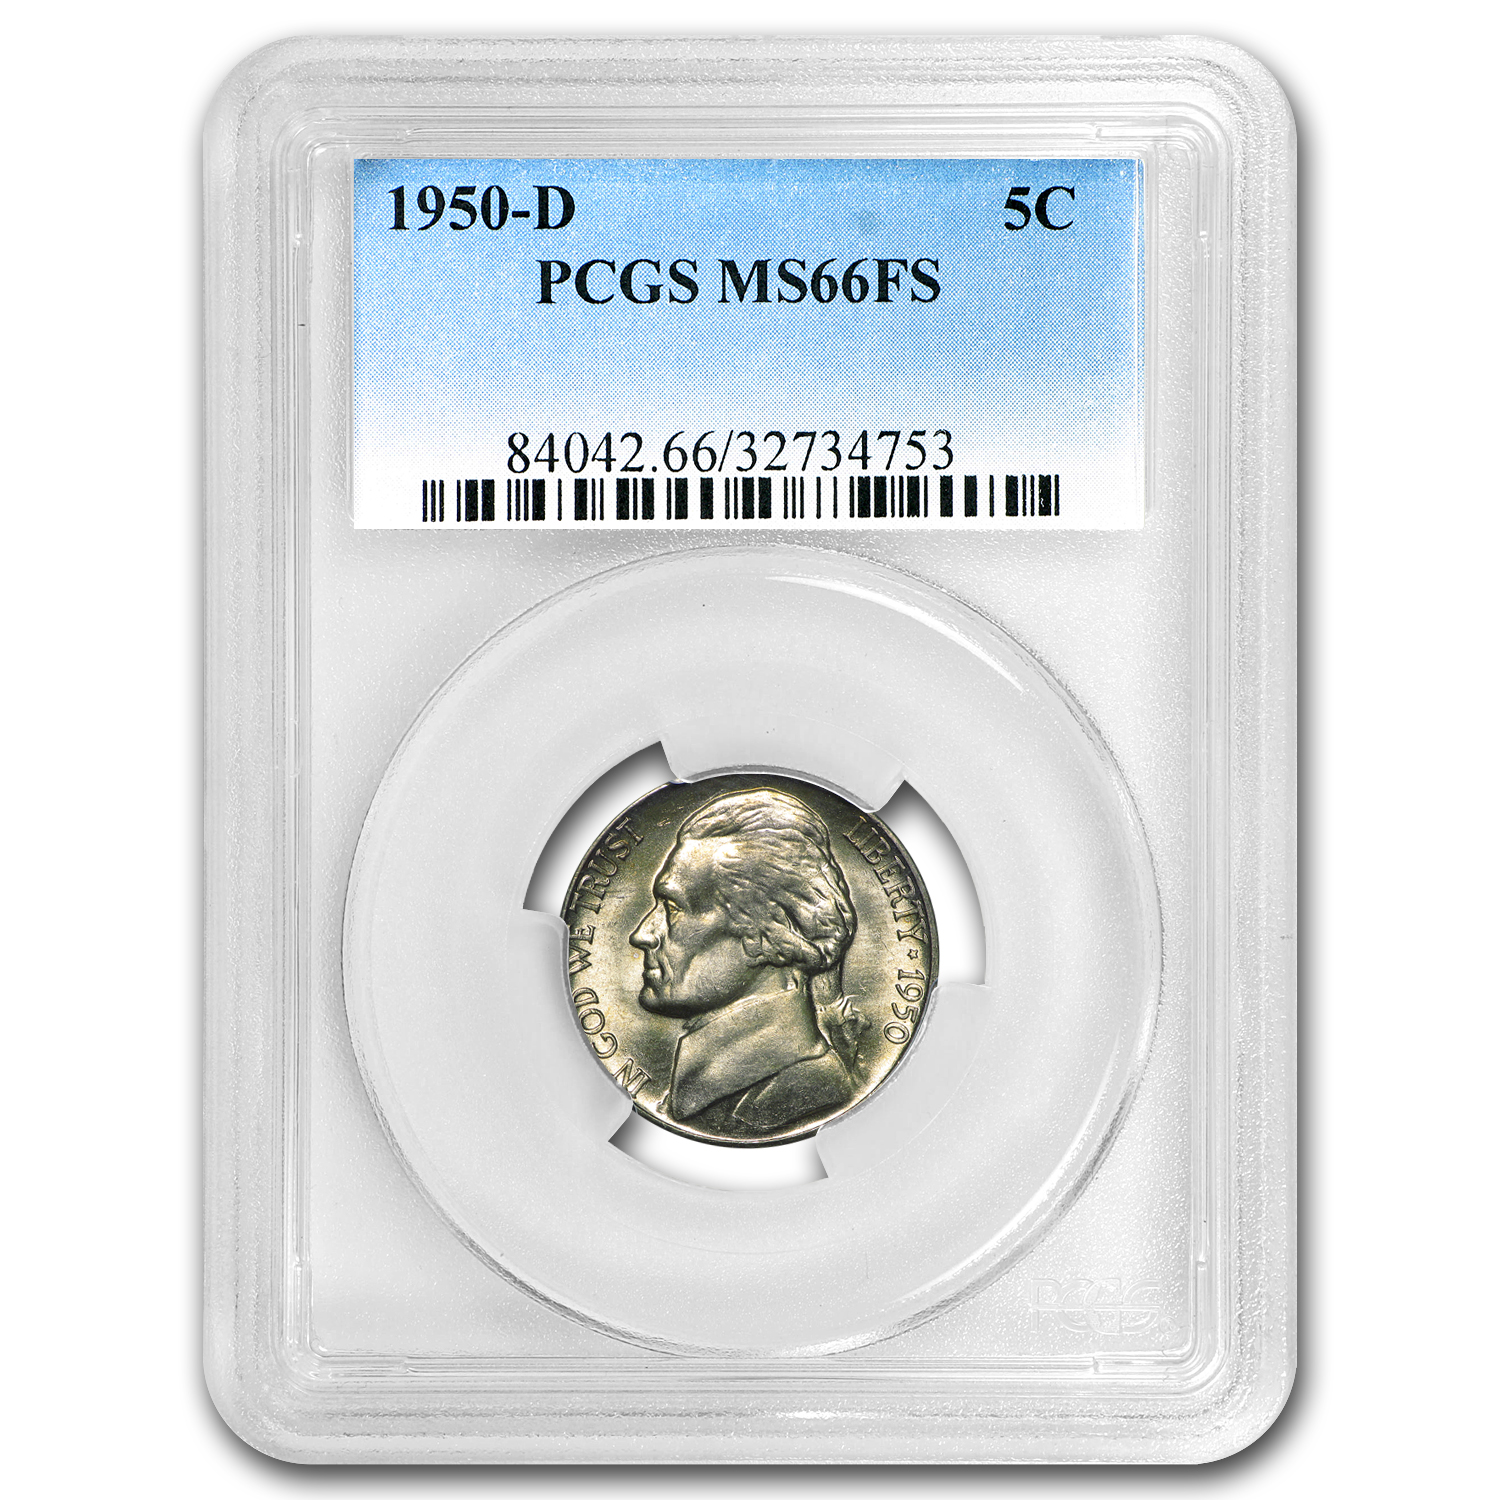 1950-D Jefferson Nickel MS-66 PCGS (Full Steps)